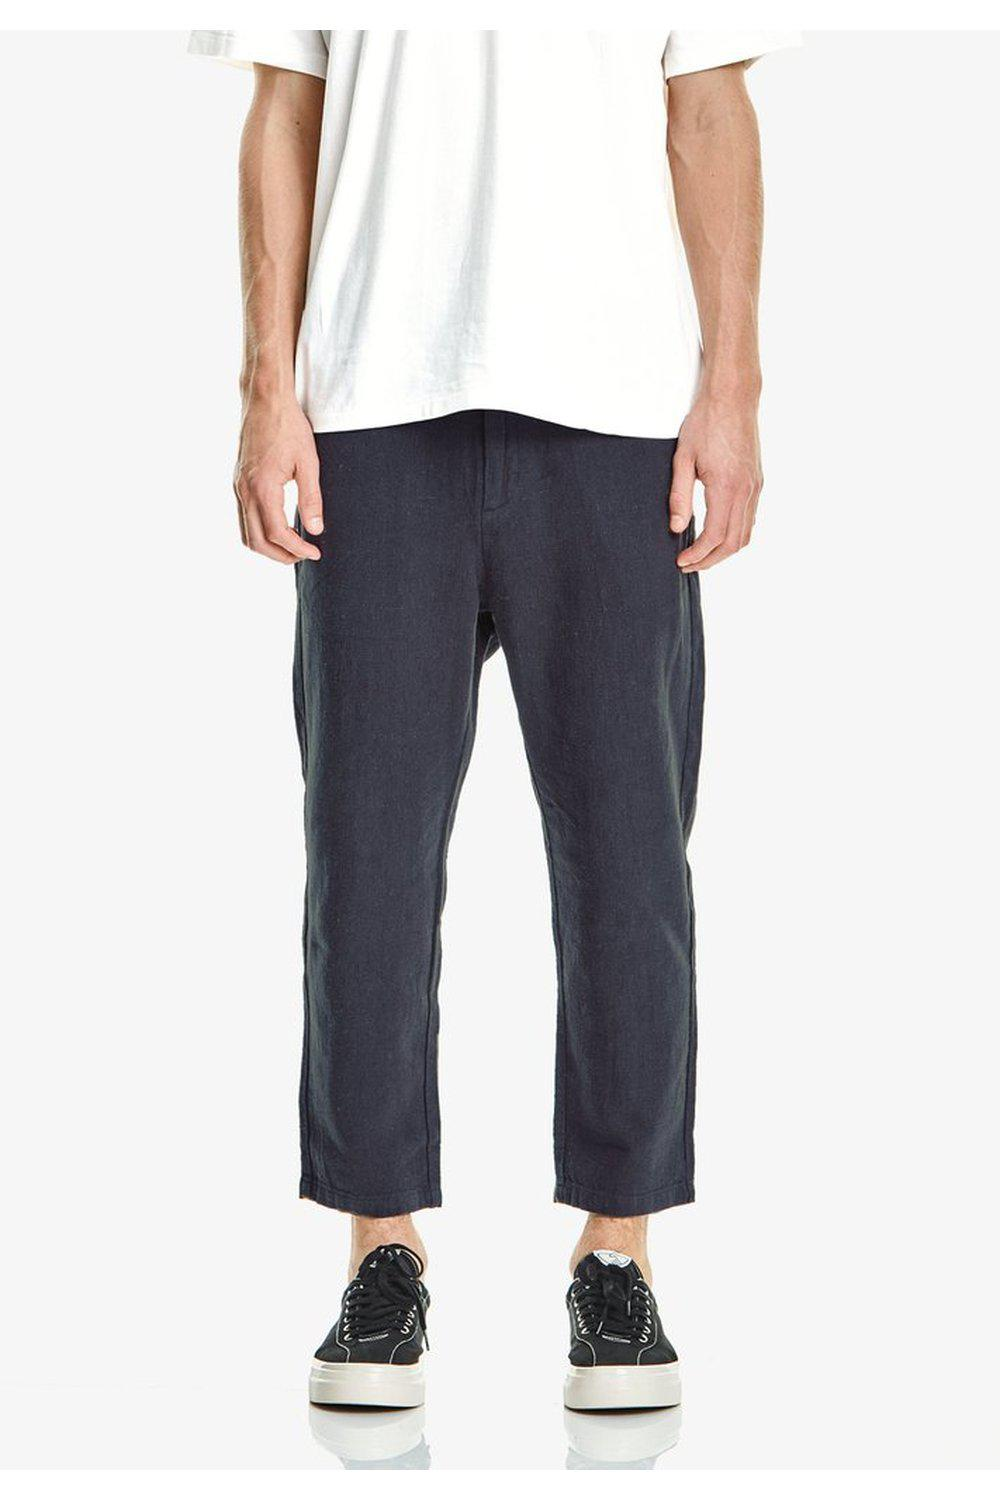 Mens Crop Linen/Cotton Pant, Navy | COMMONERS | Mad About The Boy